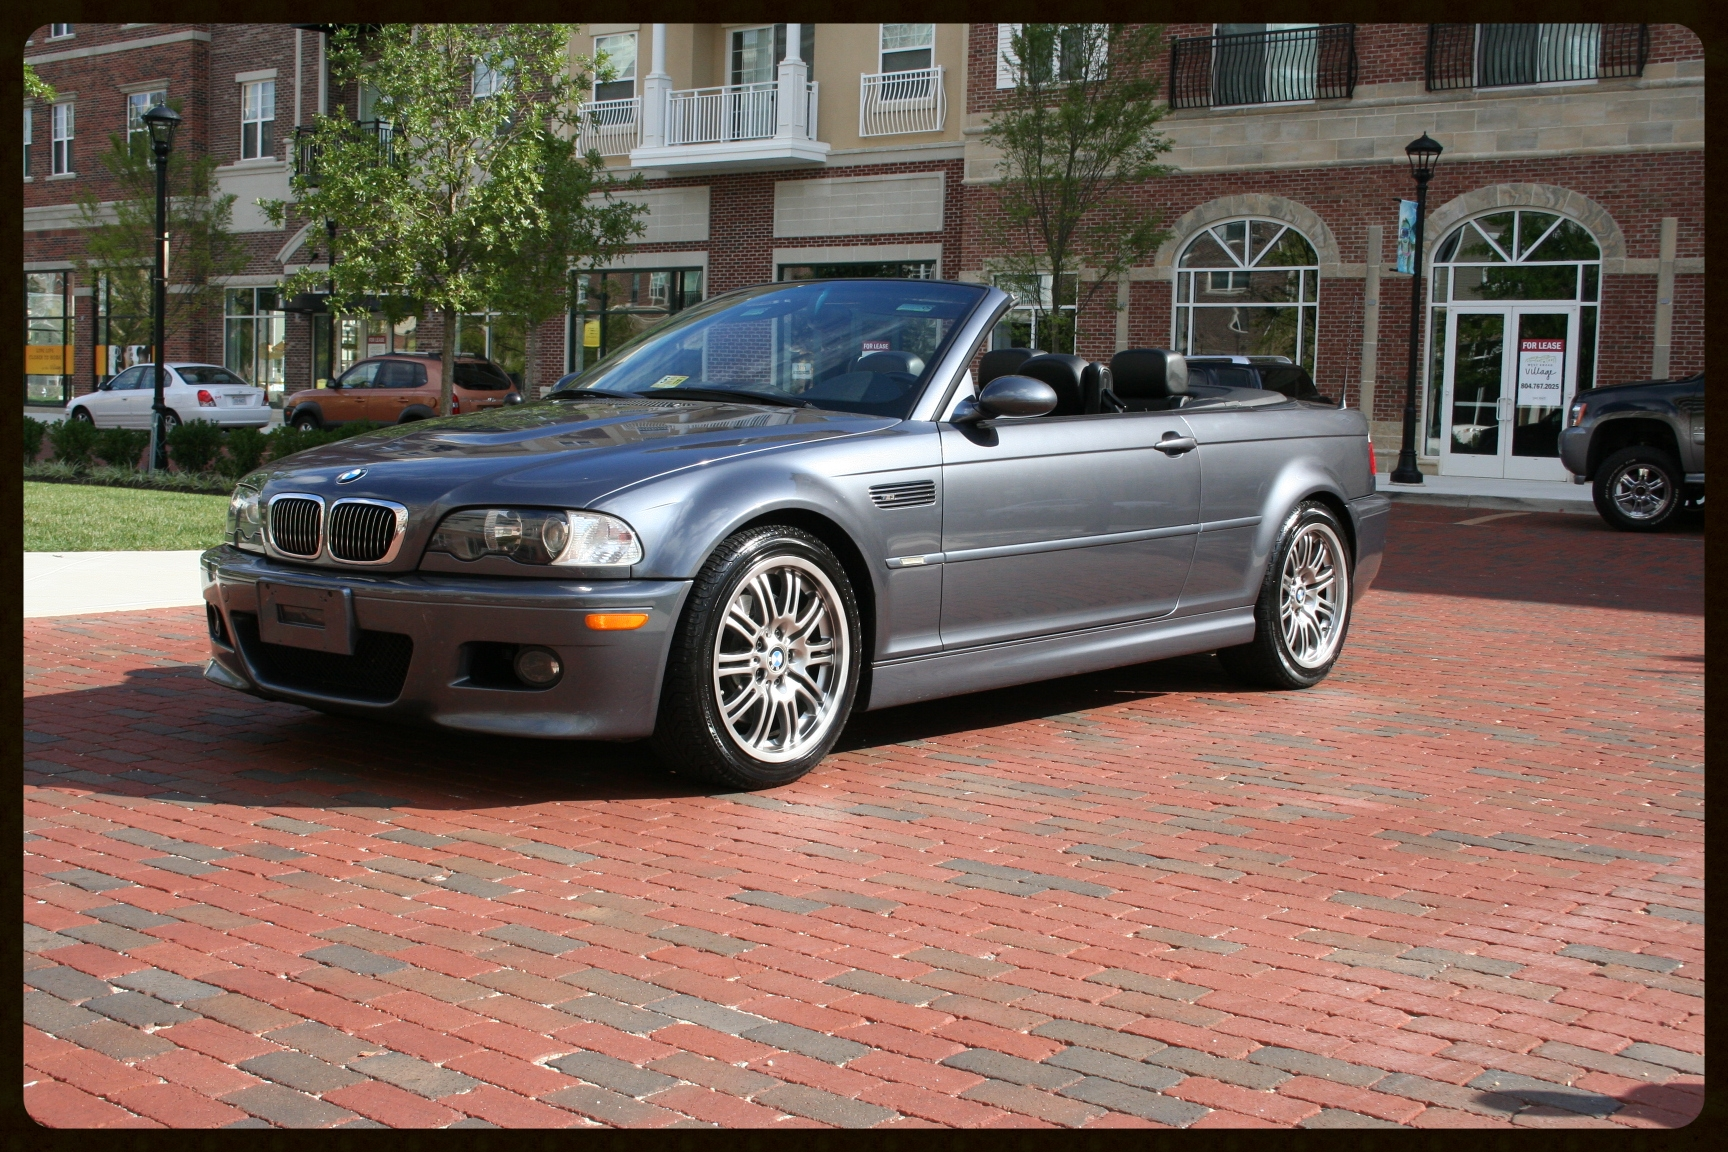 Another Pristine E46 M3 Convertible By Davis AutoSports....This Gorgeous M3 ONLY HAS 32K ORIGINAL MILES...